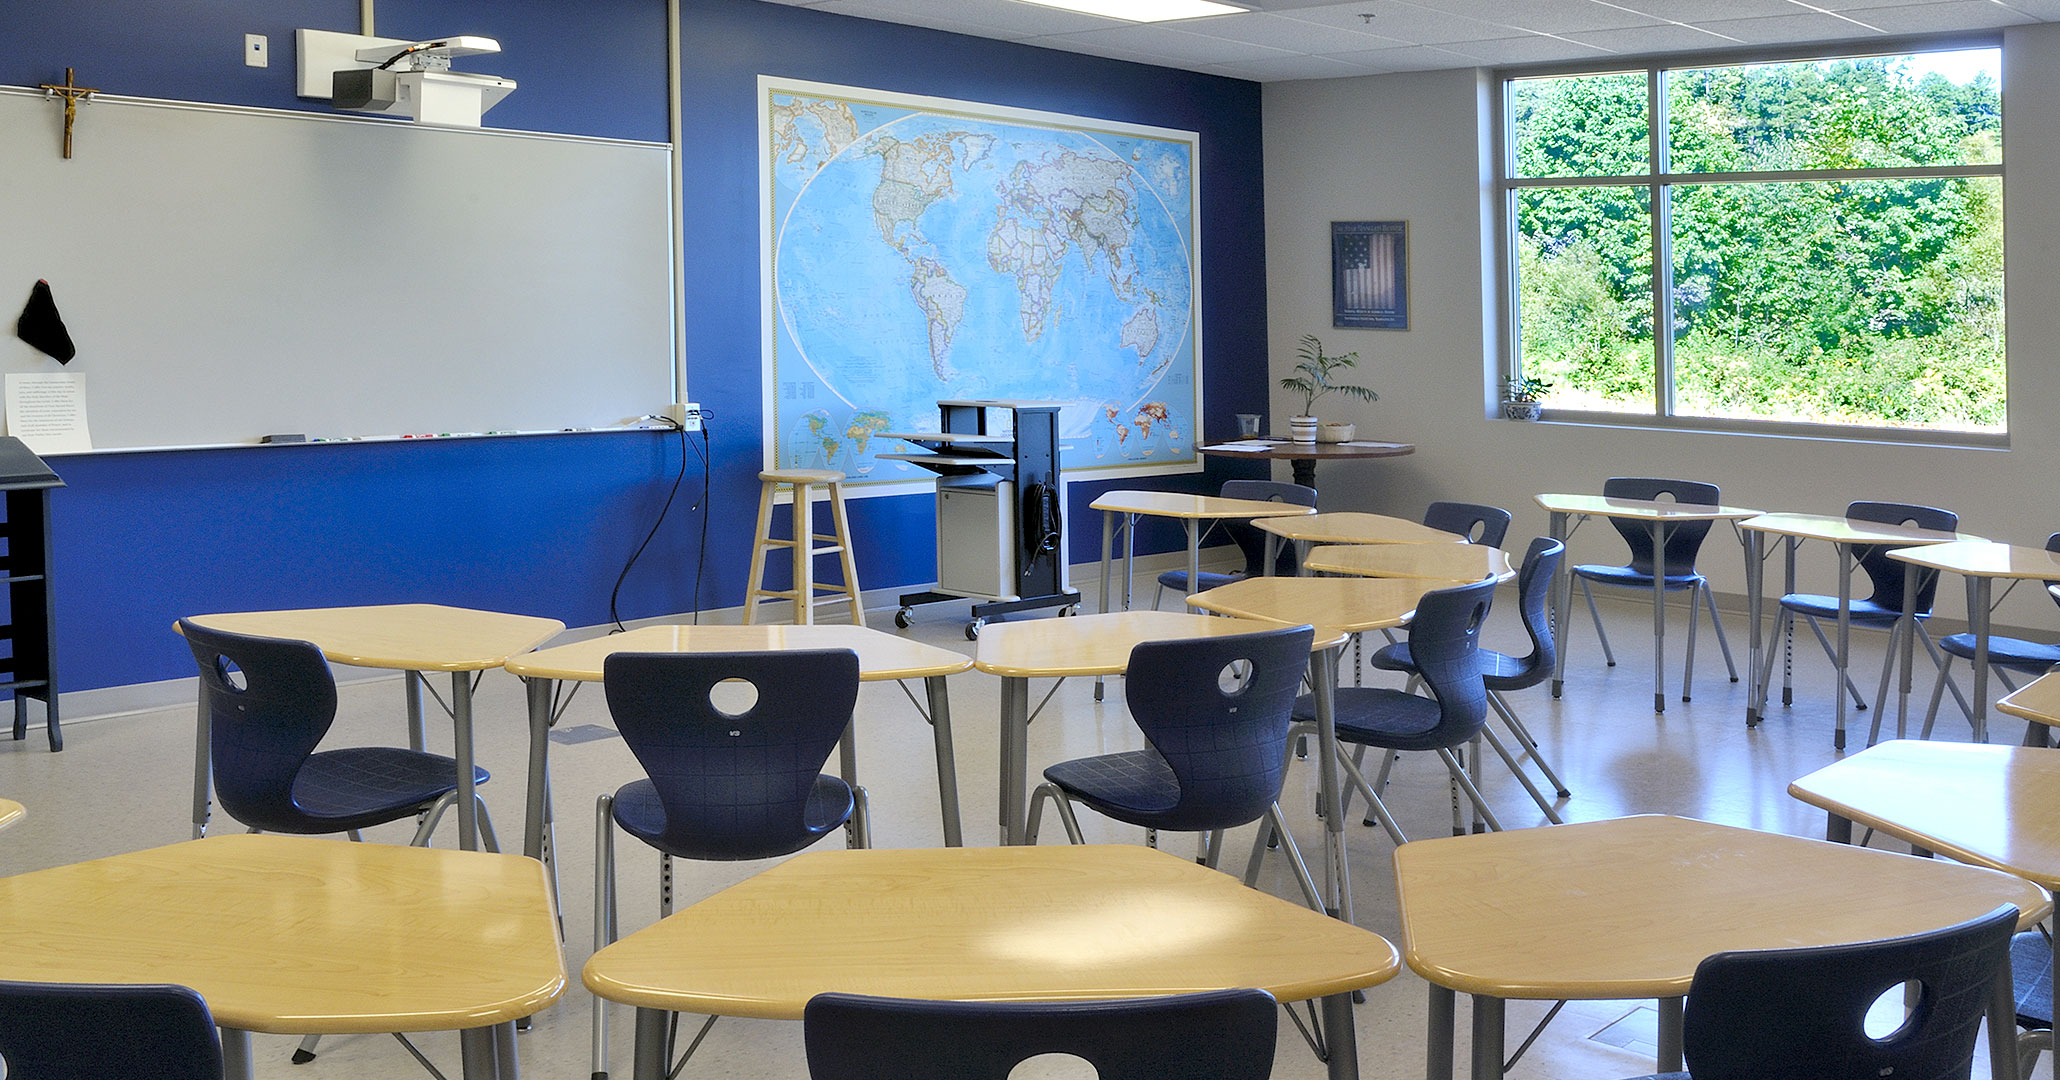 The Charlotte Diocese and Christ the King Catholic High School worked with Boudreaux master planners and architects to design the school's classrooms.